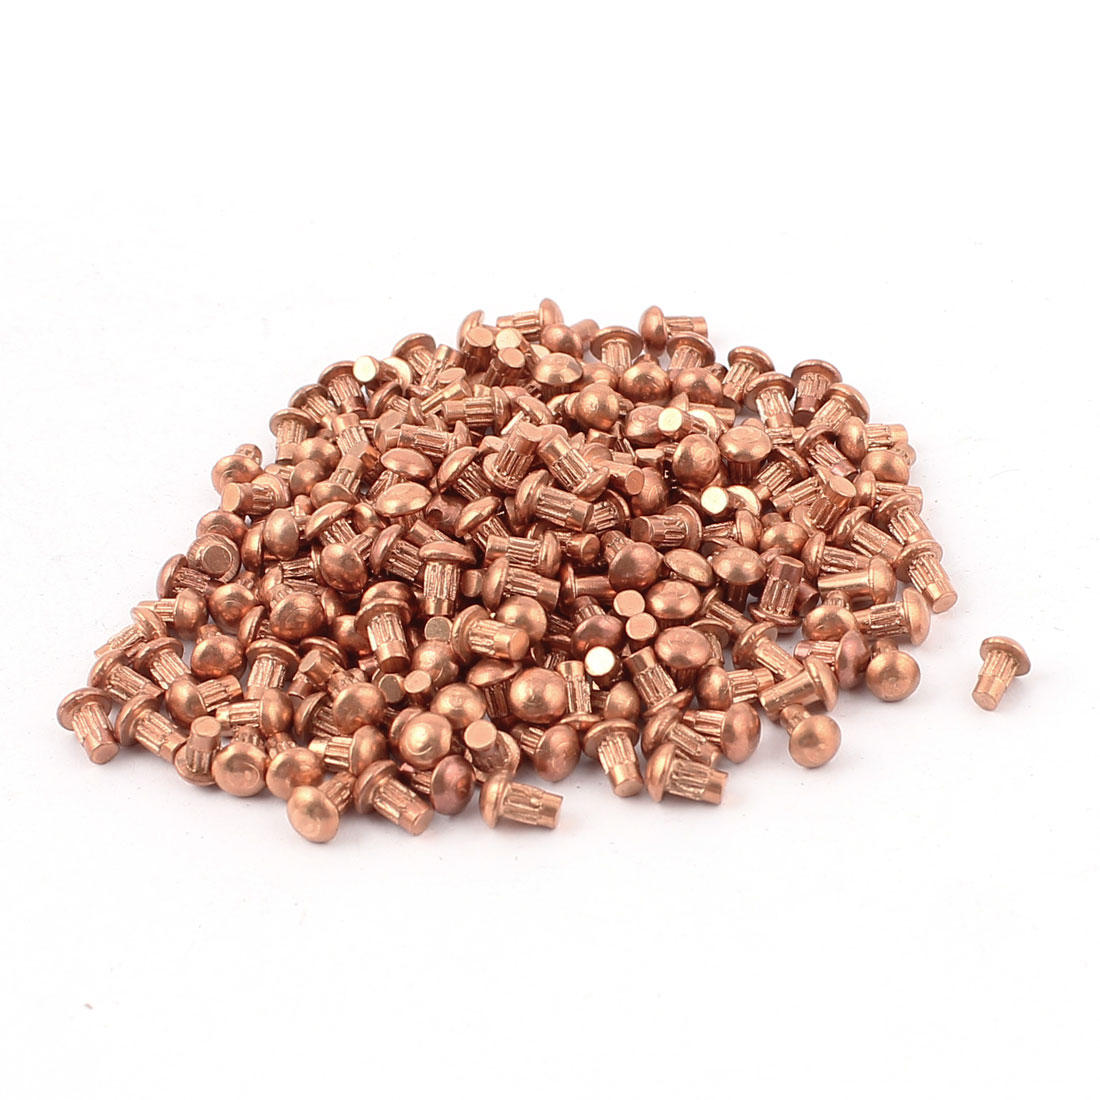 "200 Pcs 3/32"" x 5/32"" Copper Round Head Solid Rivets Knurled Shanks"